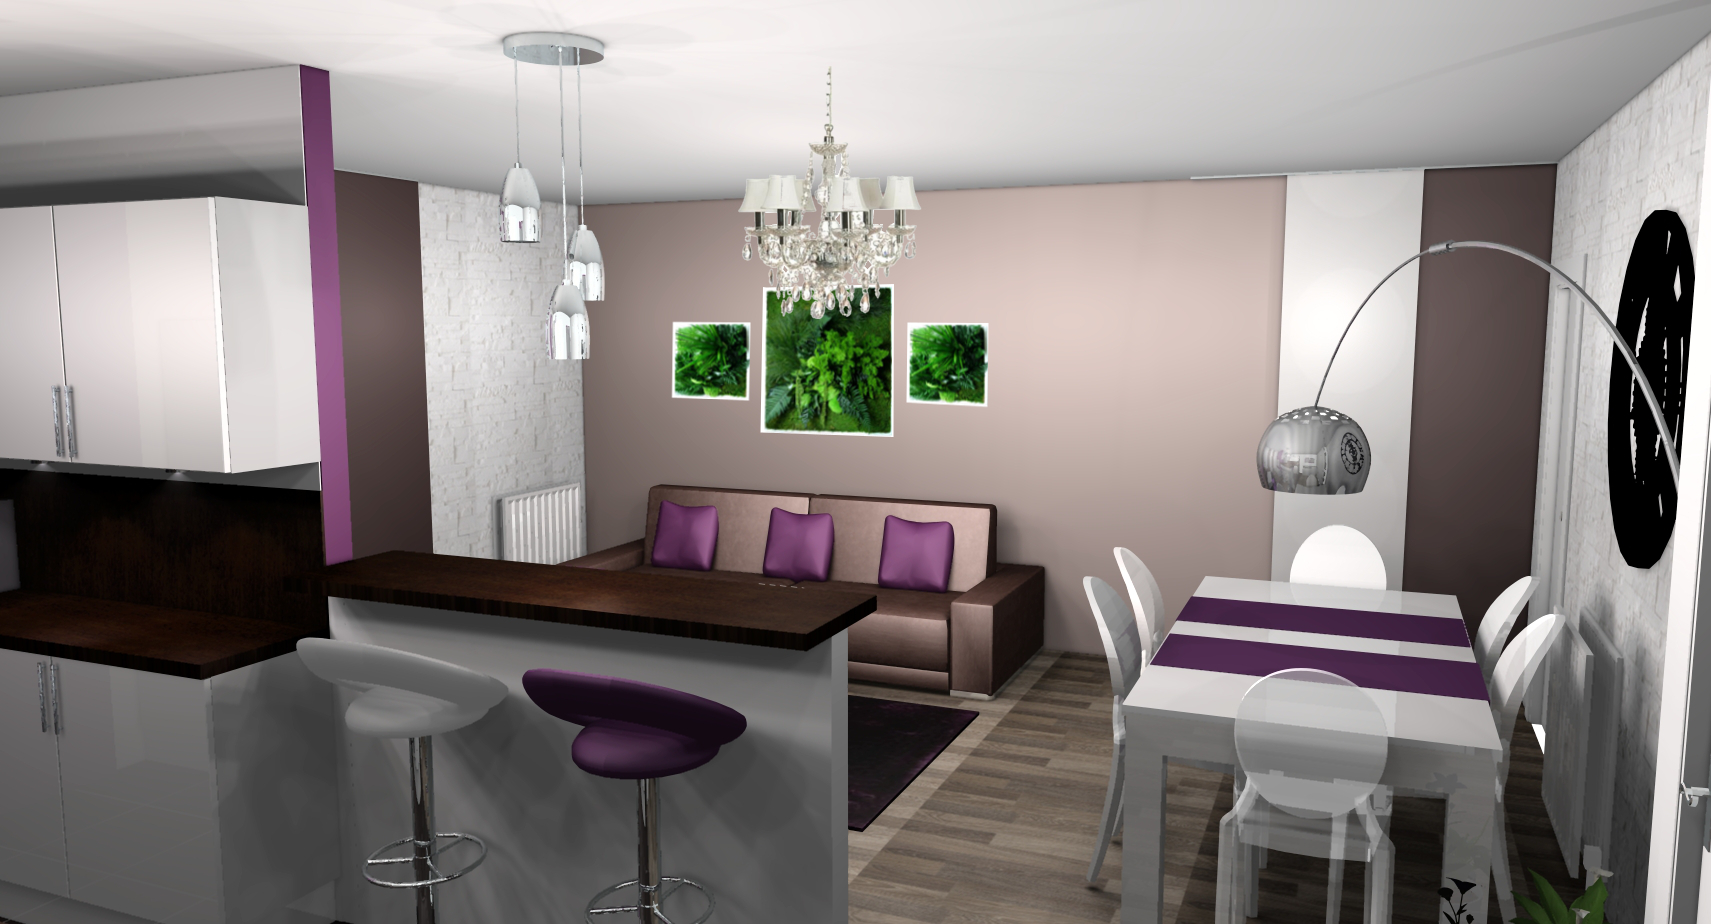 D co salle a manger blanc et marron exemples d 39 am nagements - Deco salon blanc et marron ...